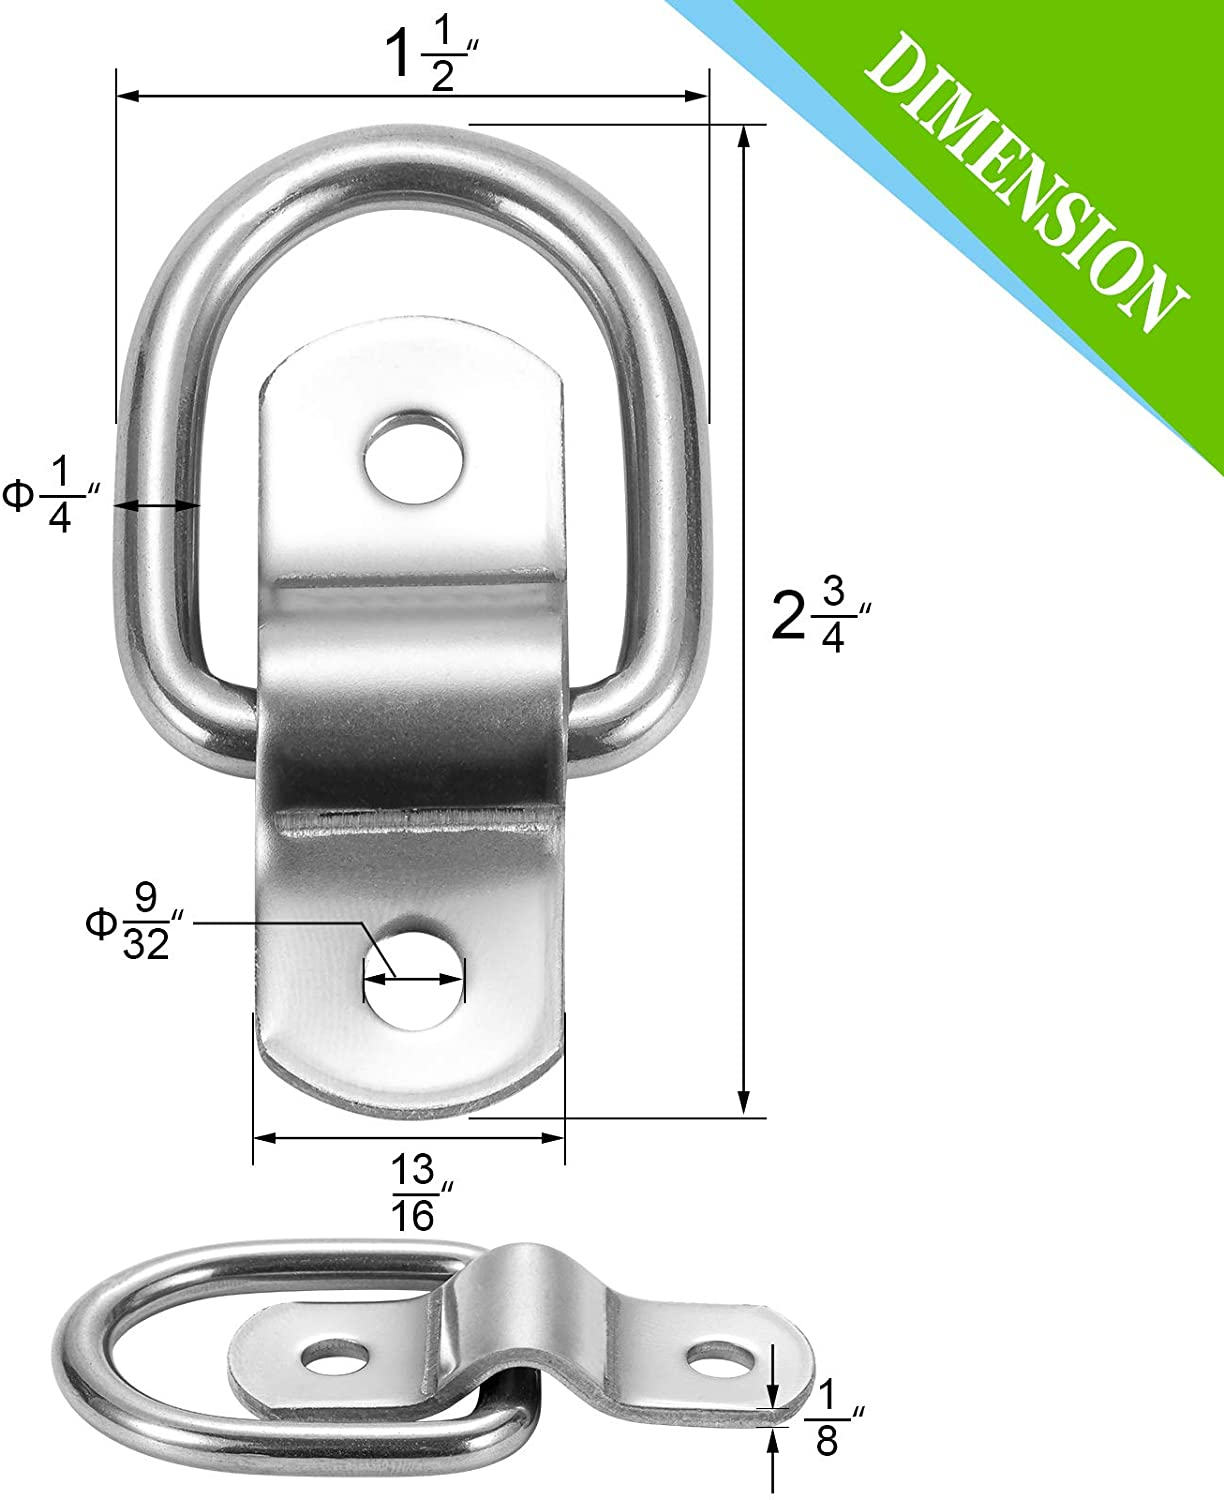 Trailer CZC AUTO 6 Pack D Ring Tie Down Anchors 1//4 Heavy Duty Stainless Steel Trailer Tie Down Hooks for Truck Cargo Control /& Surface Mount with Screws Boat Warehouse Camper